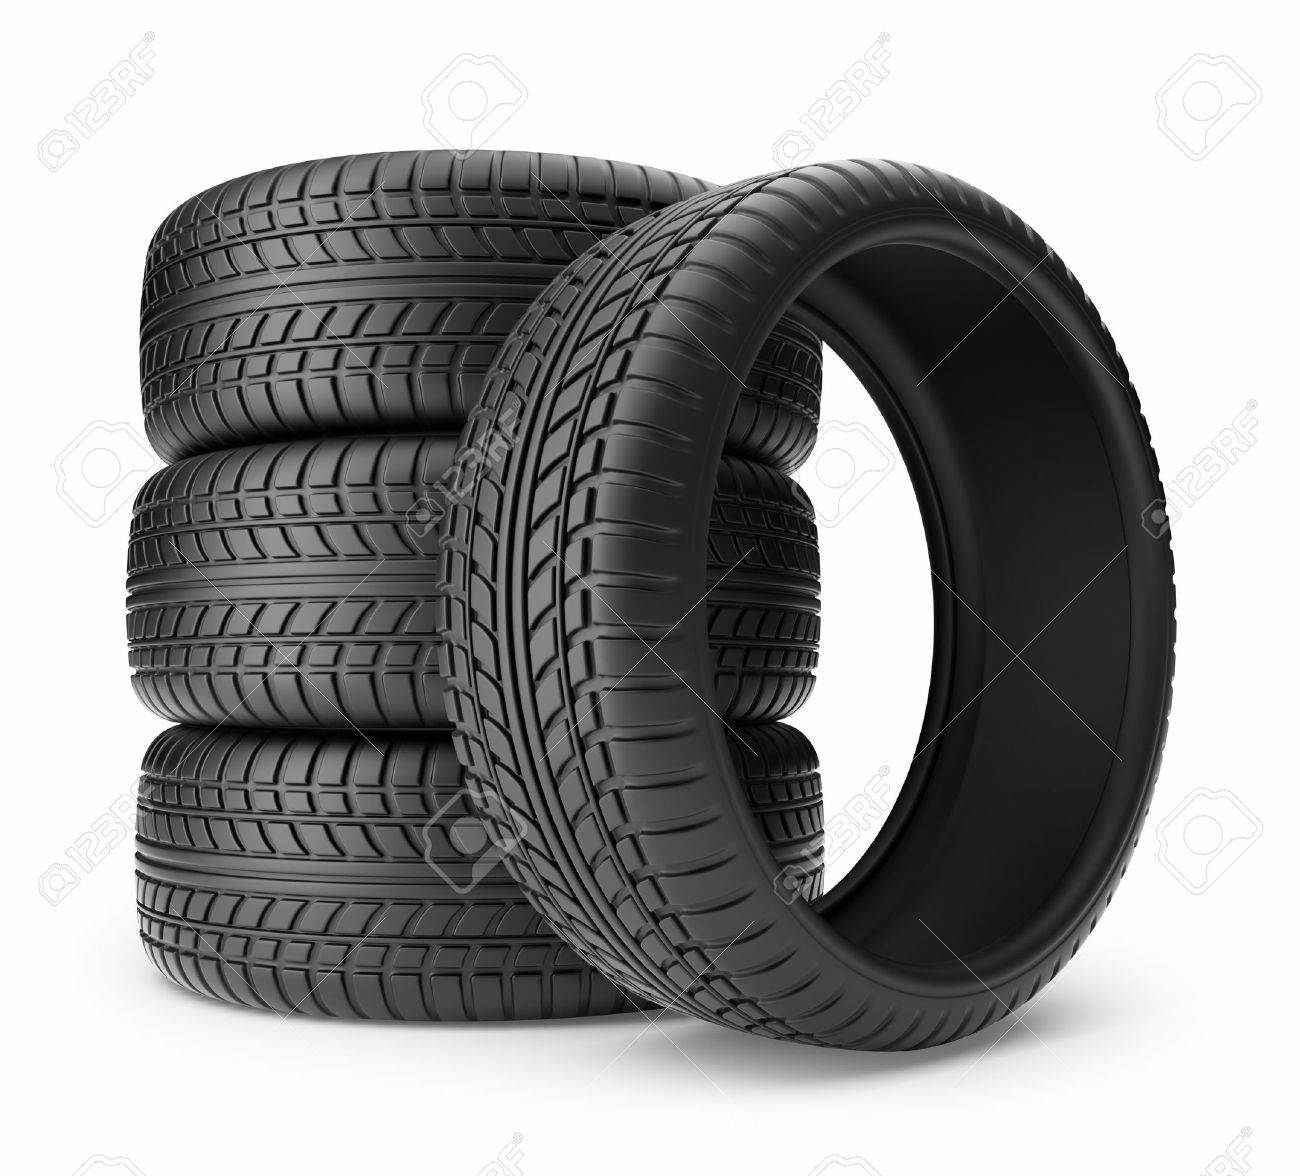 Rubber tire  Wheel 3D, Icon isolated on white background Stock Photo - 16400318